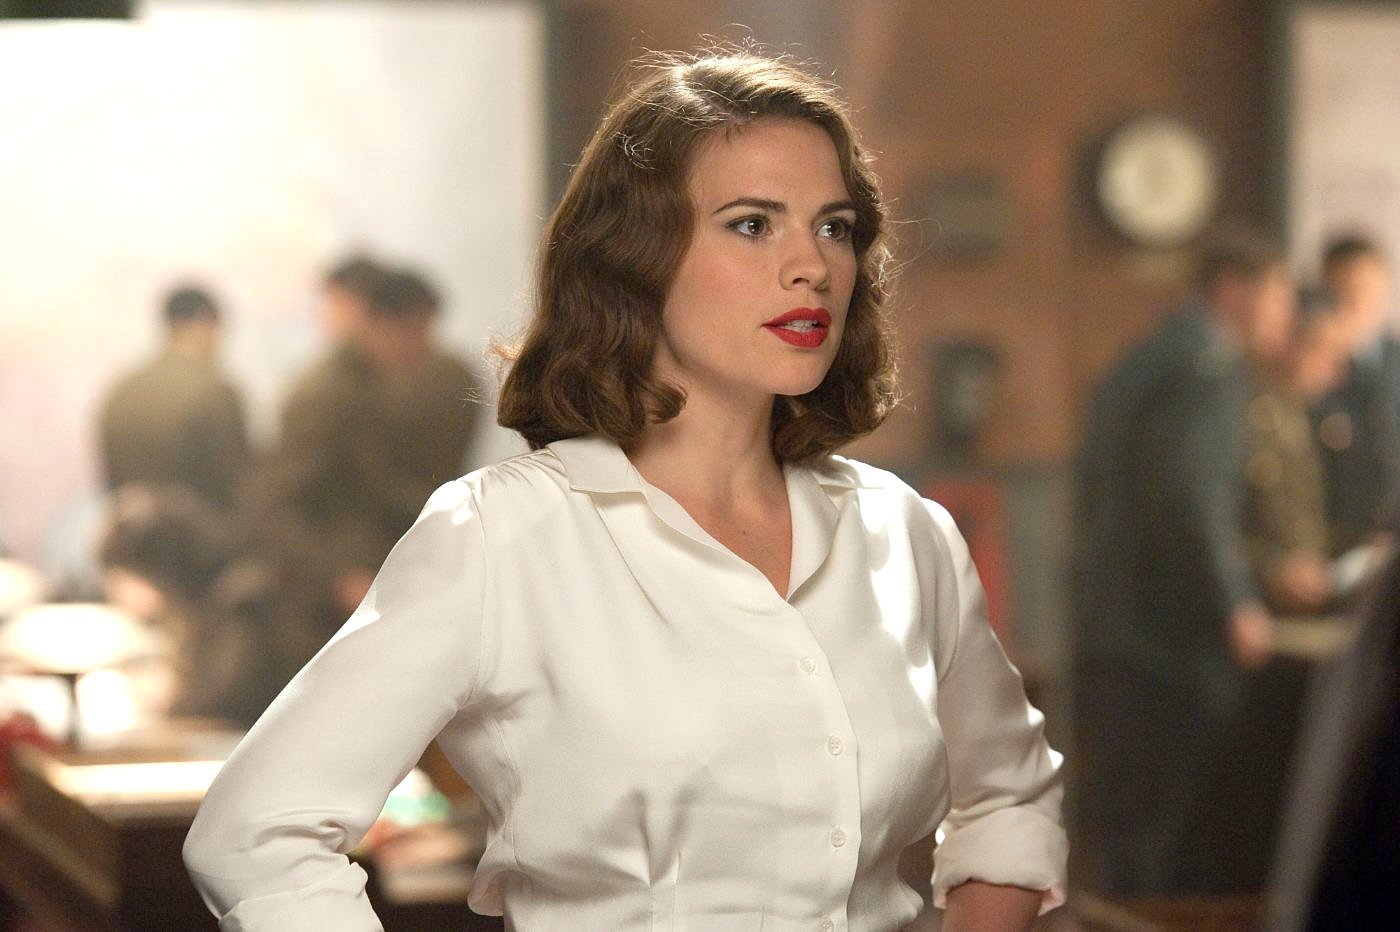 Hayley Atwell and Showrunners Are Booked for ABC's 'Agent Carter'